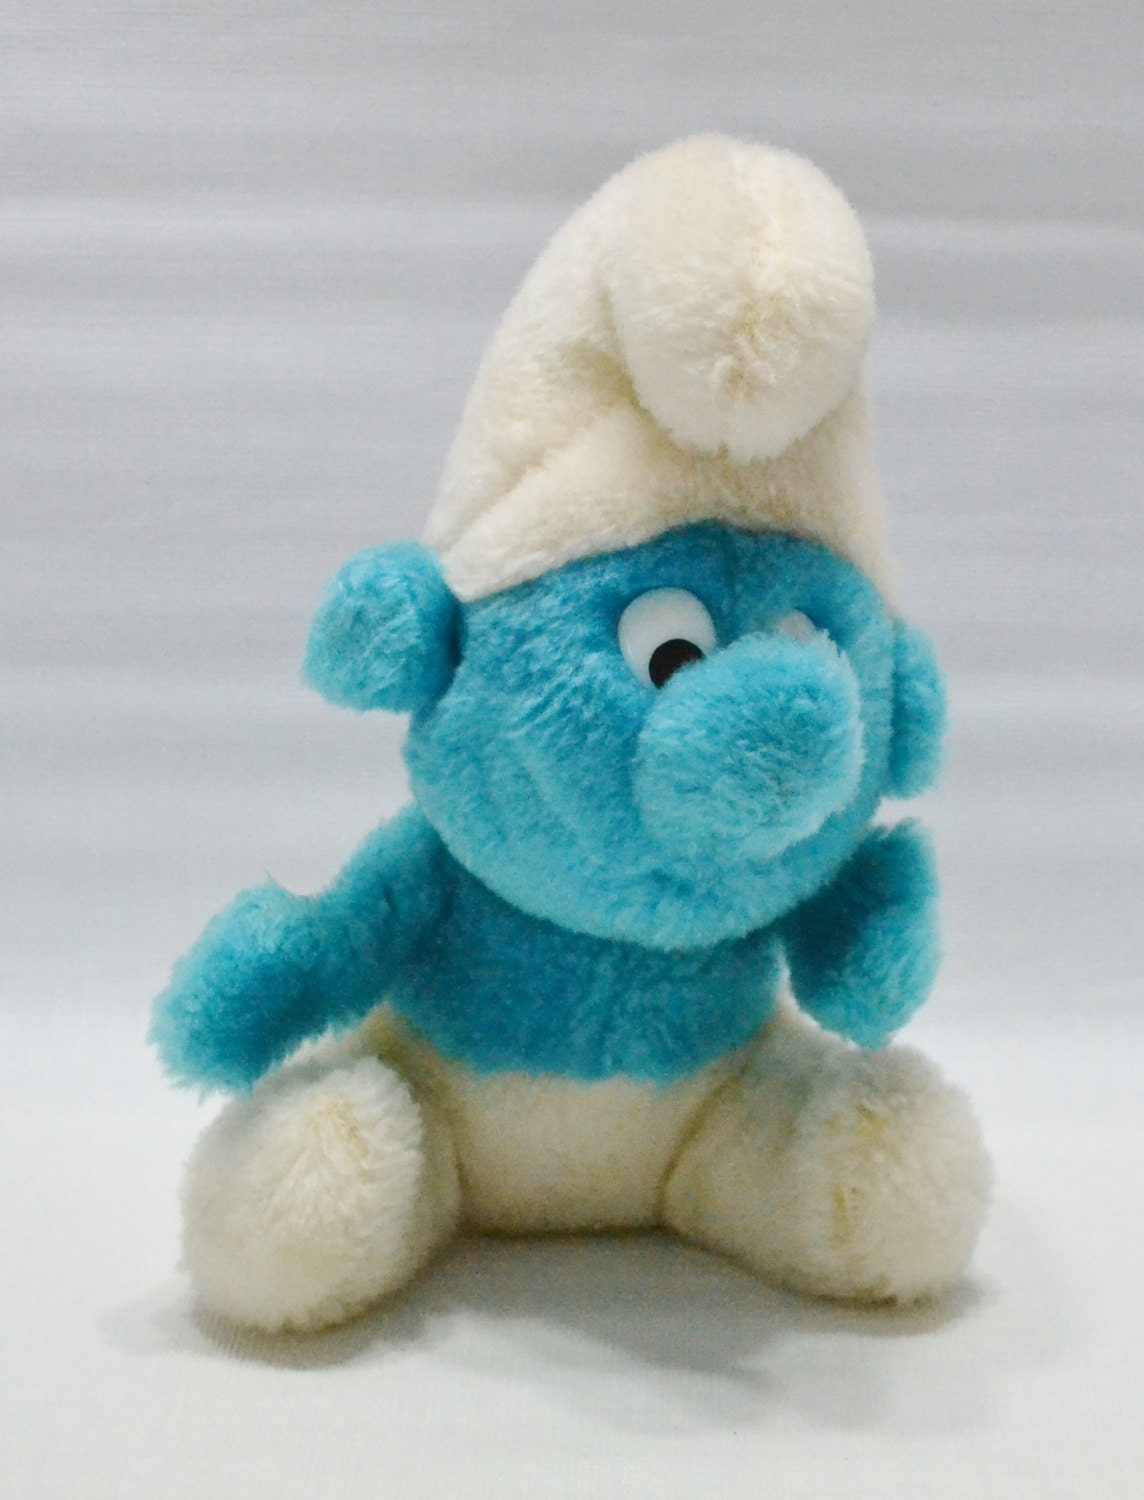 Vintage Stuffed Smurf Doll Toy Plush 1980